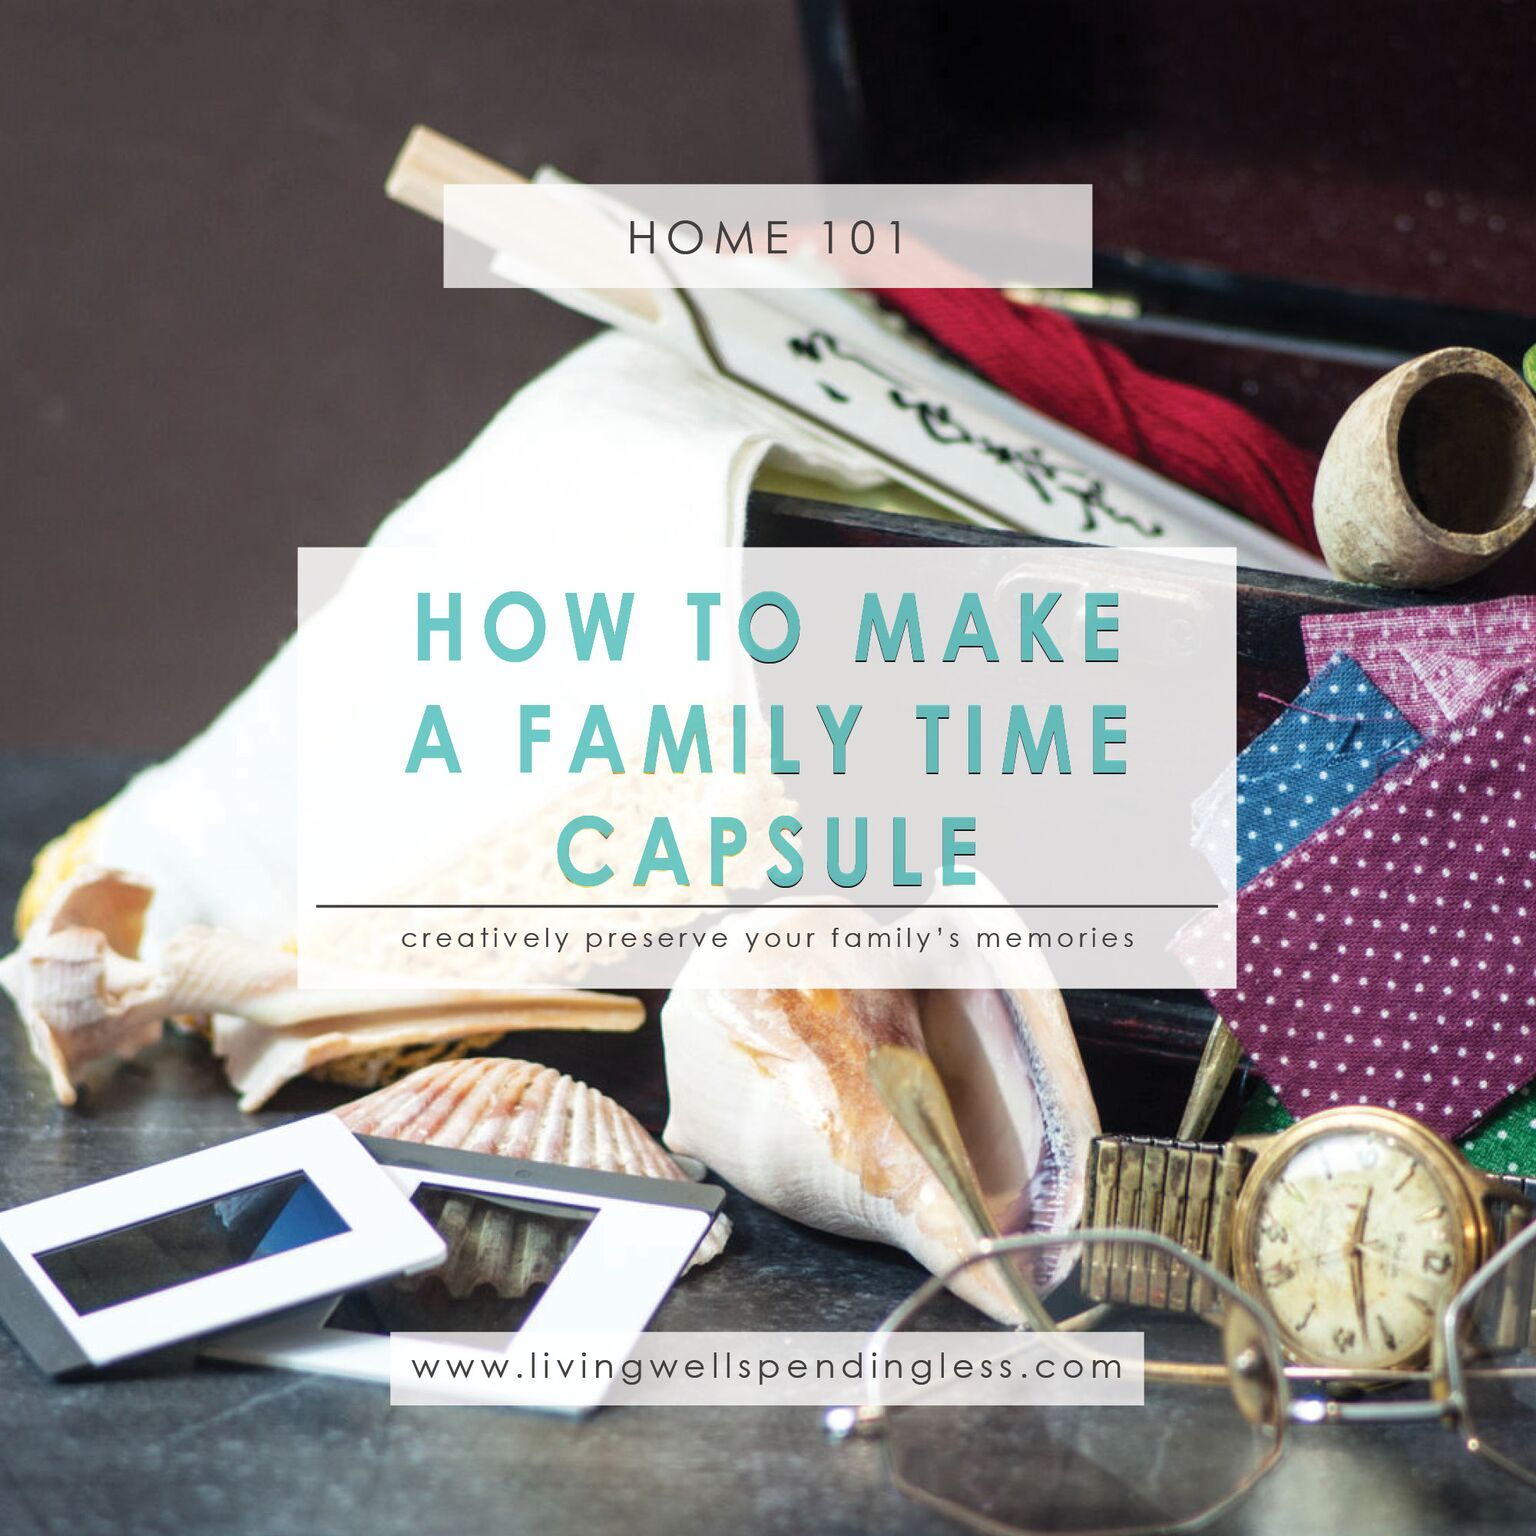 How to Make a Family Time Capsule⎢Creatively Preserve Family Memories⎢Family Activities⎢Memory Keeping